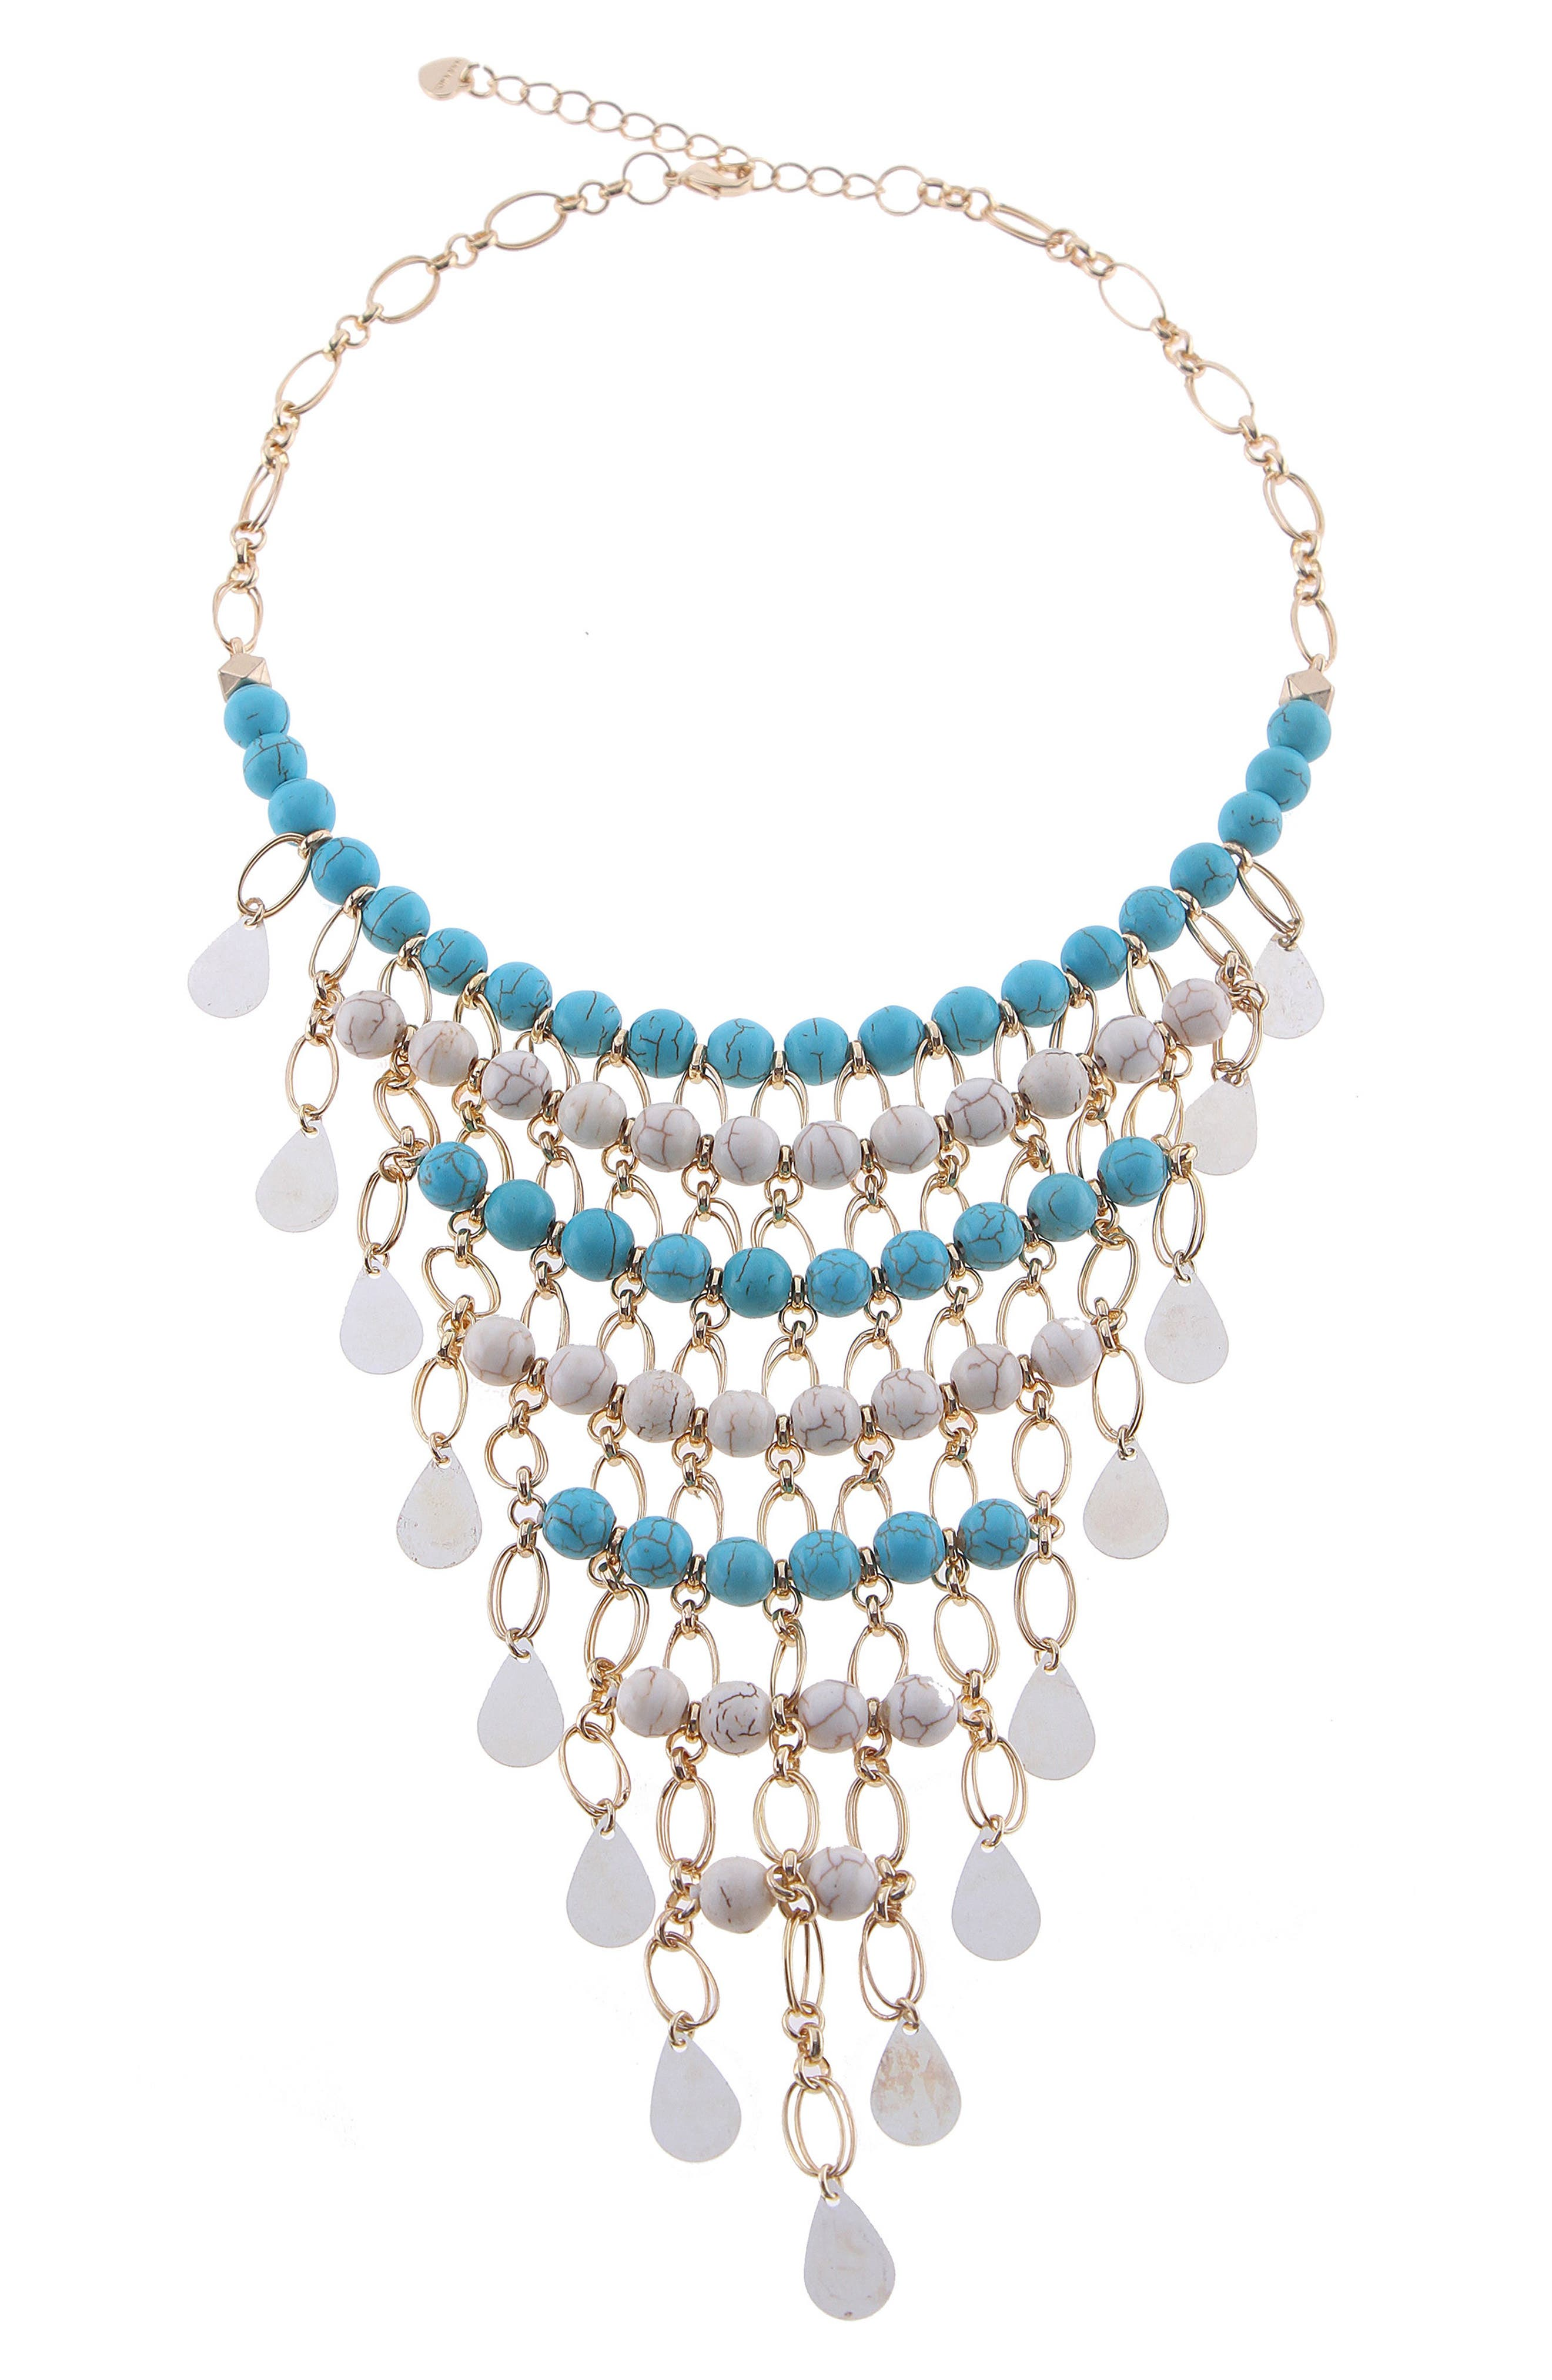 Crystal & Agate Beaded Bib Necklace,                         Main,                         color, Turquoise